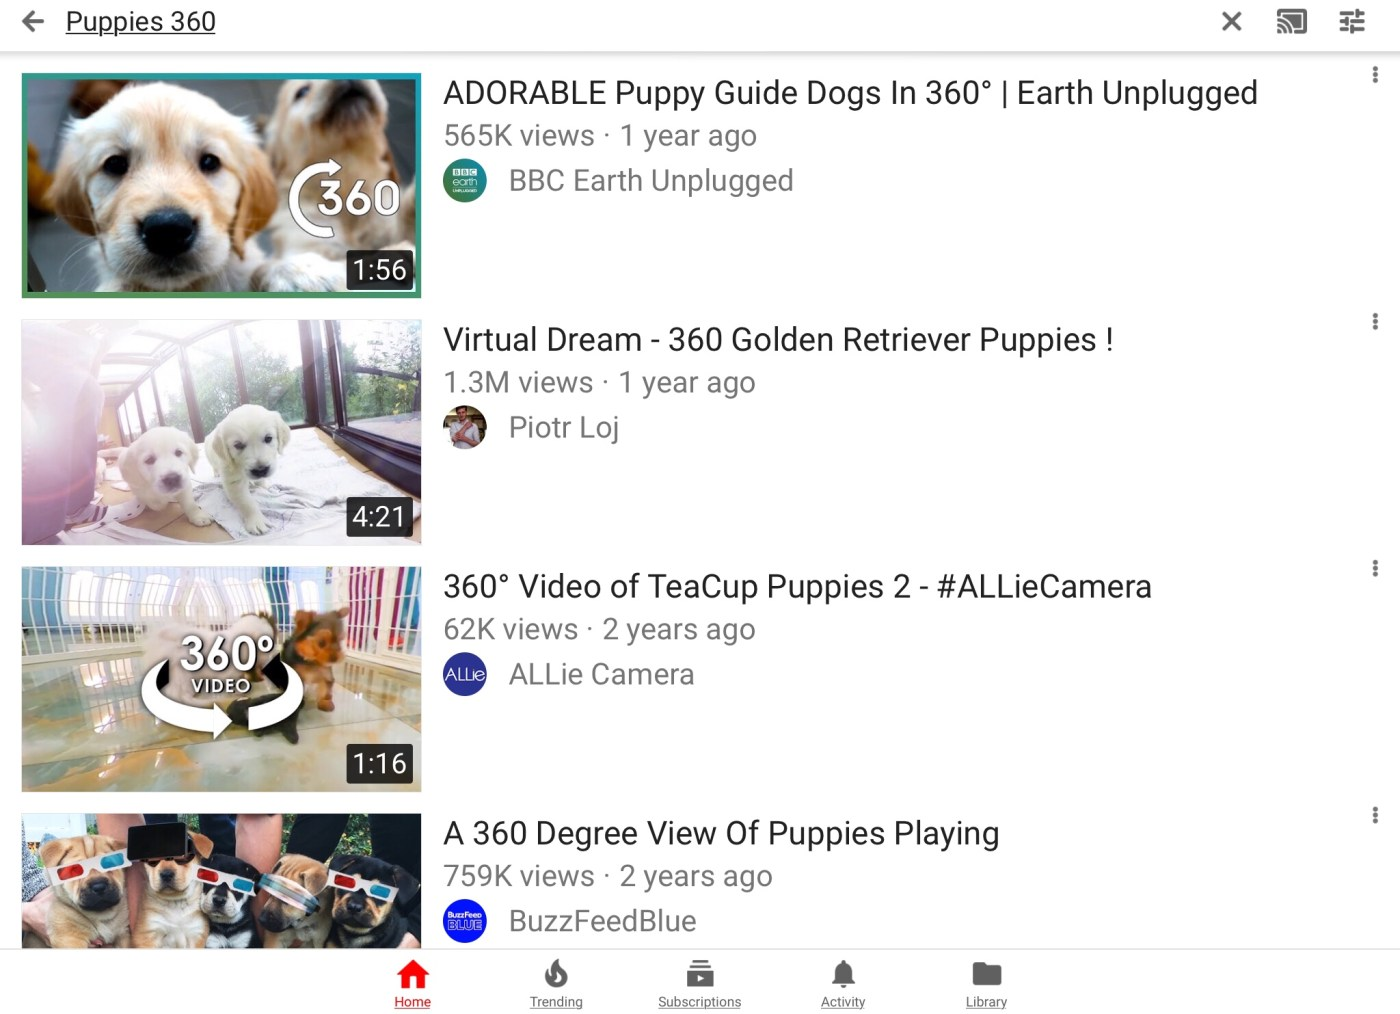 Search results from the YouTube app that show puppies in 360 video